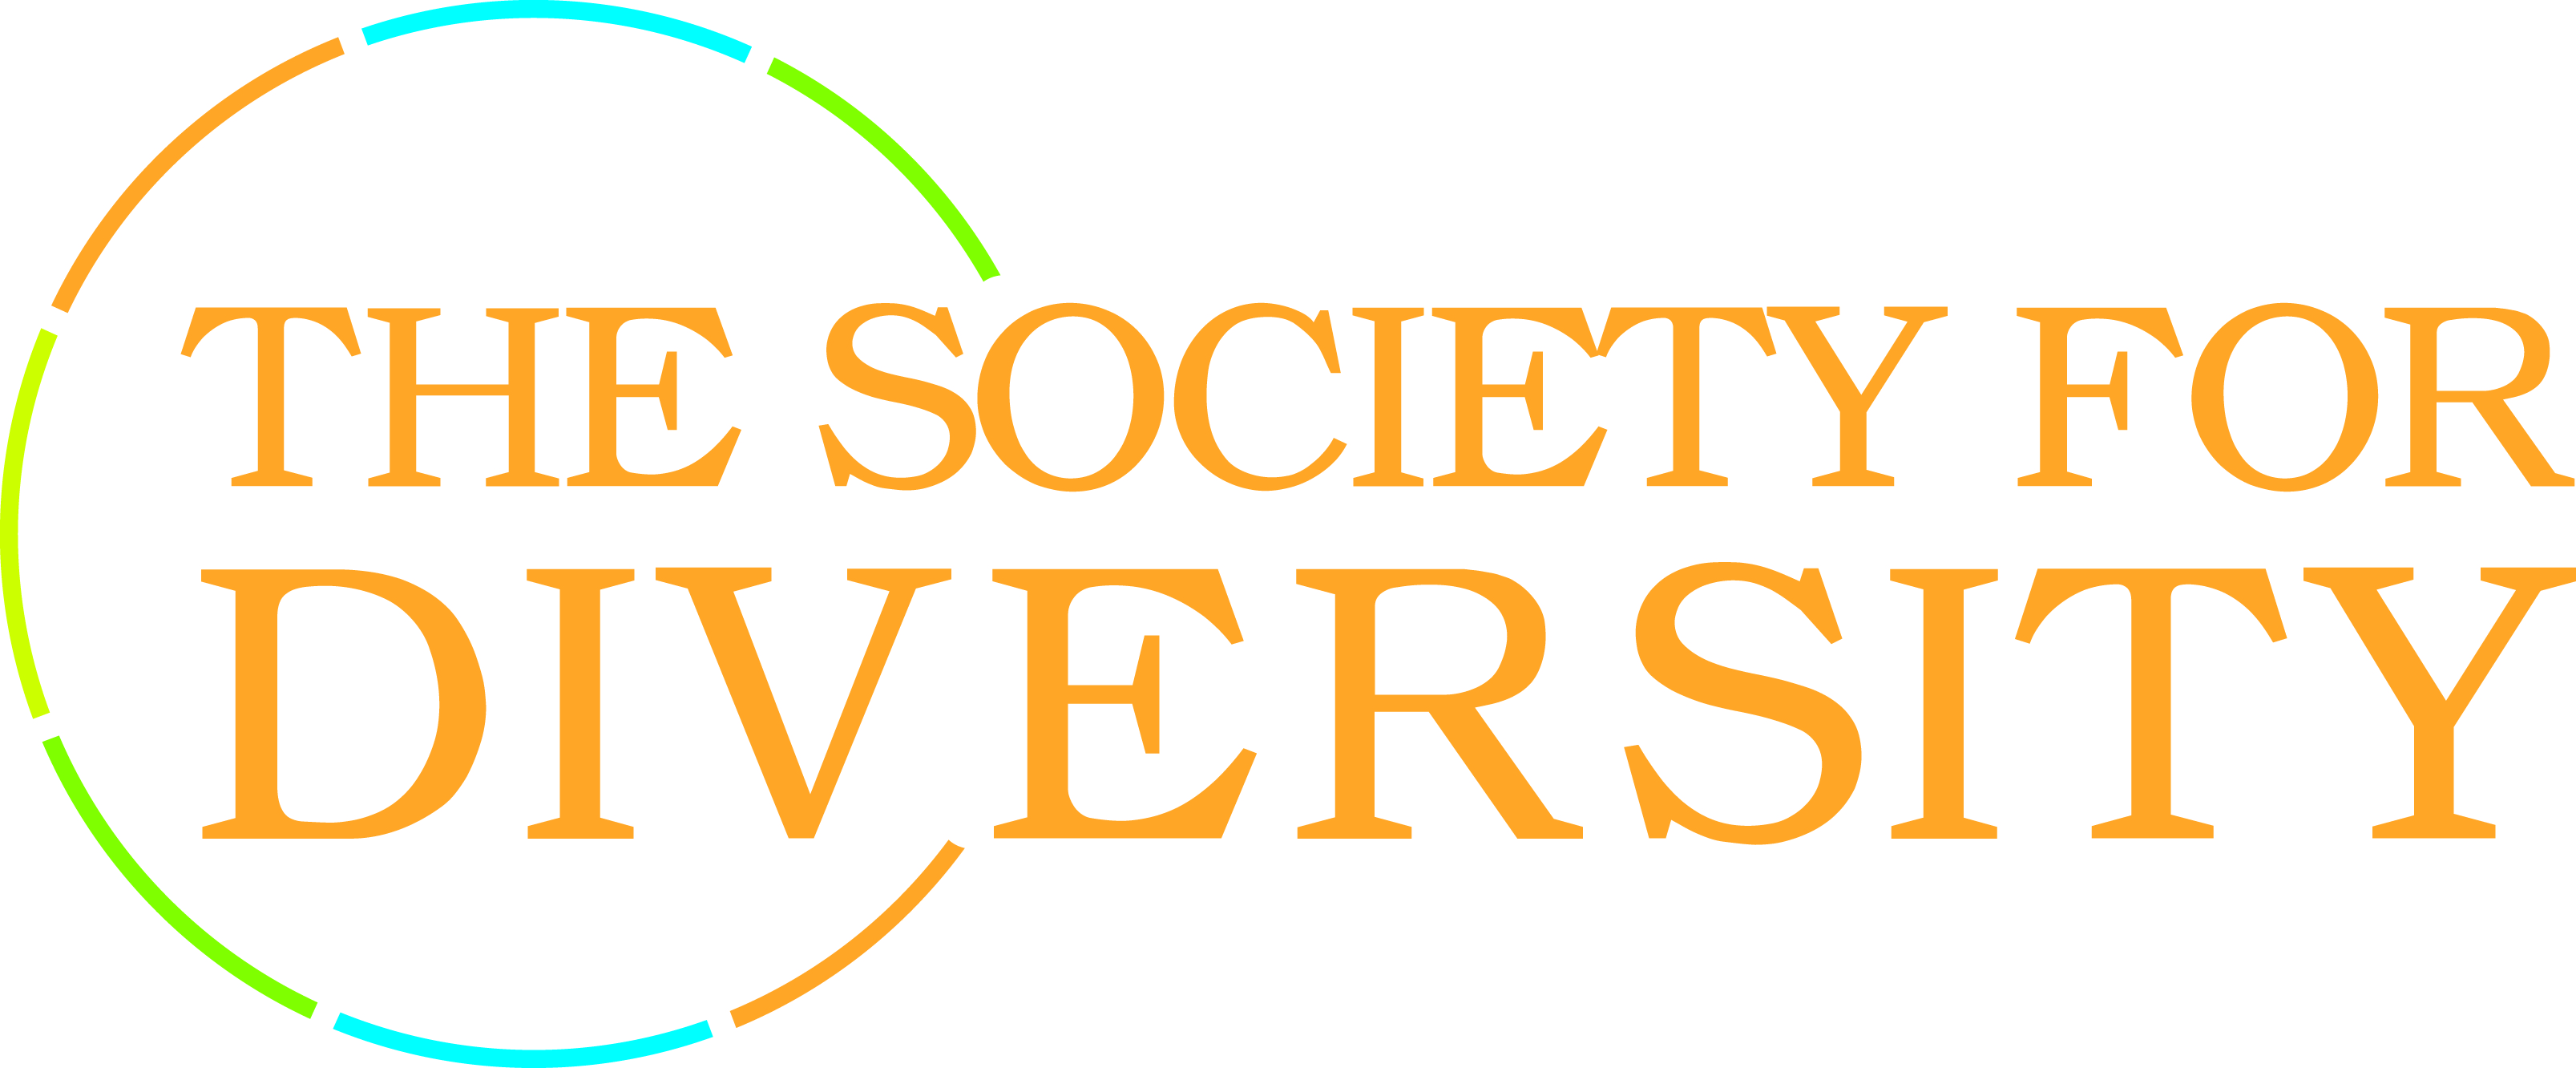 The Society for Diversity